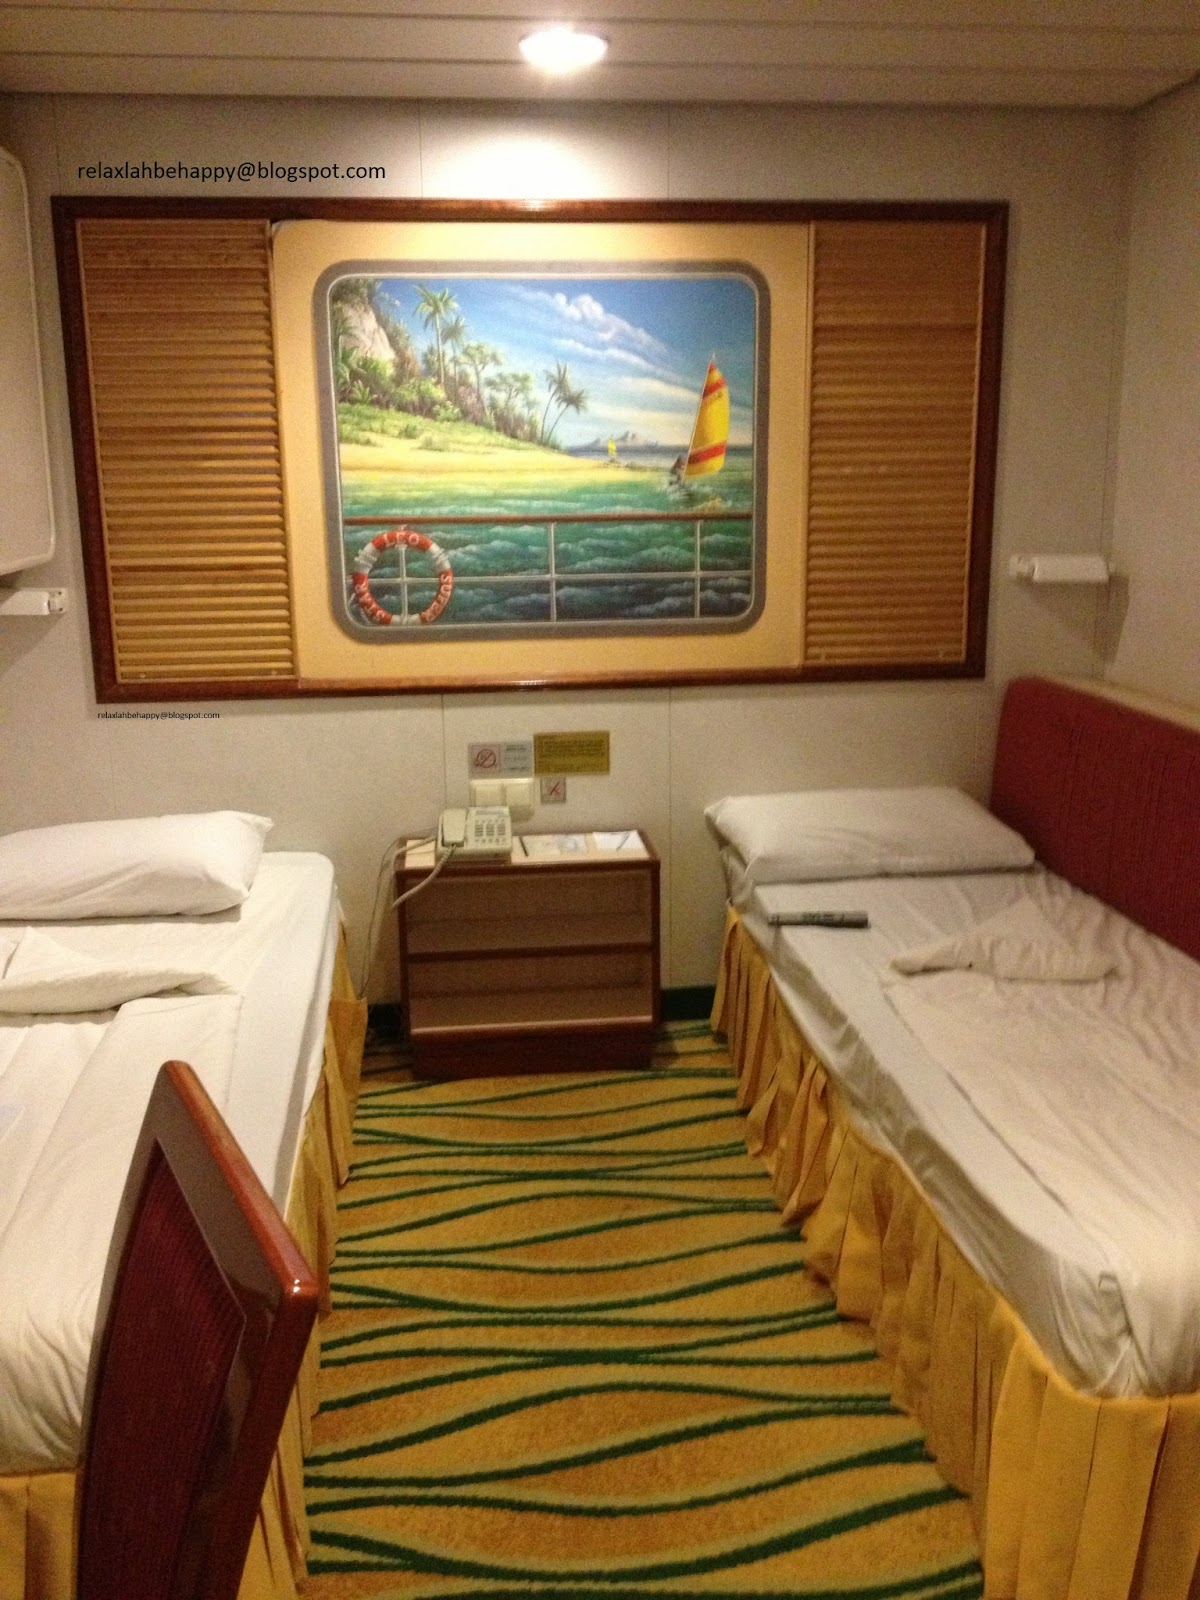 Relax Lah Be Happy Welcome Aboard To Star Cruise